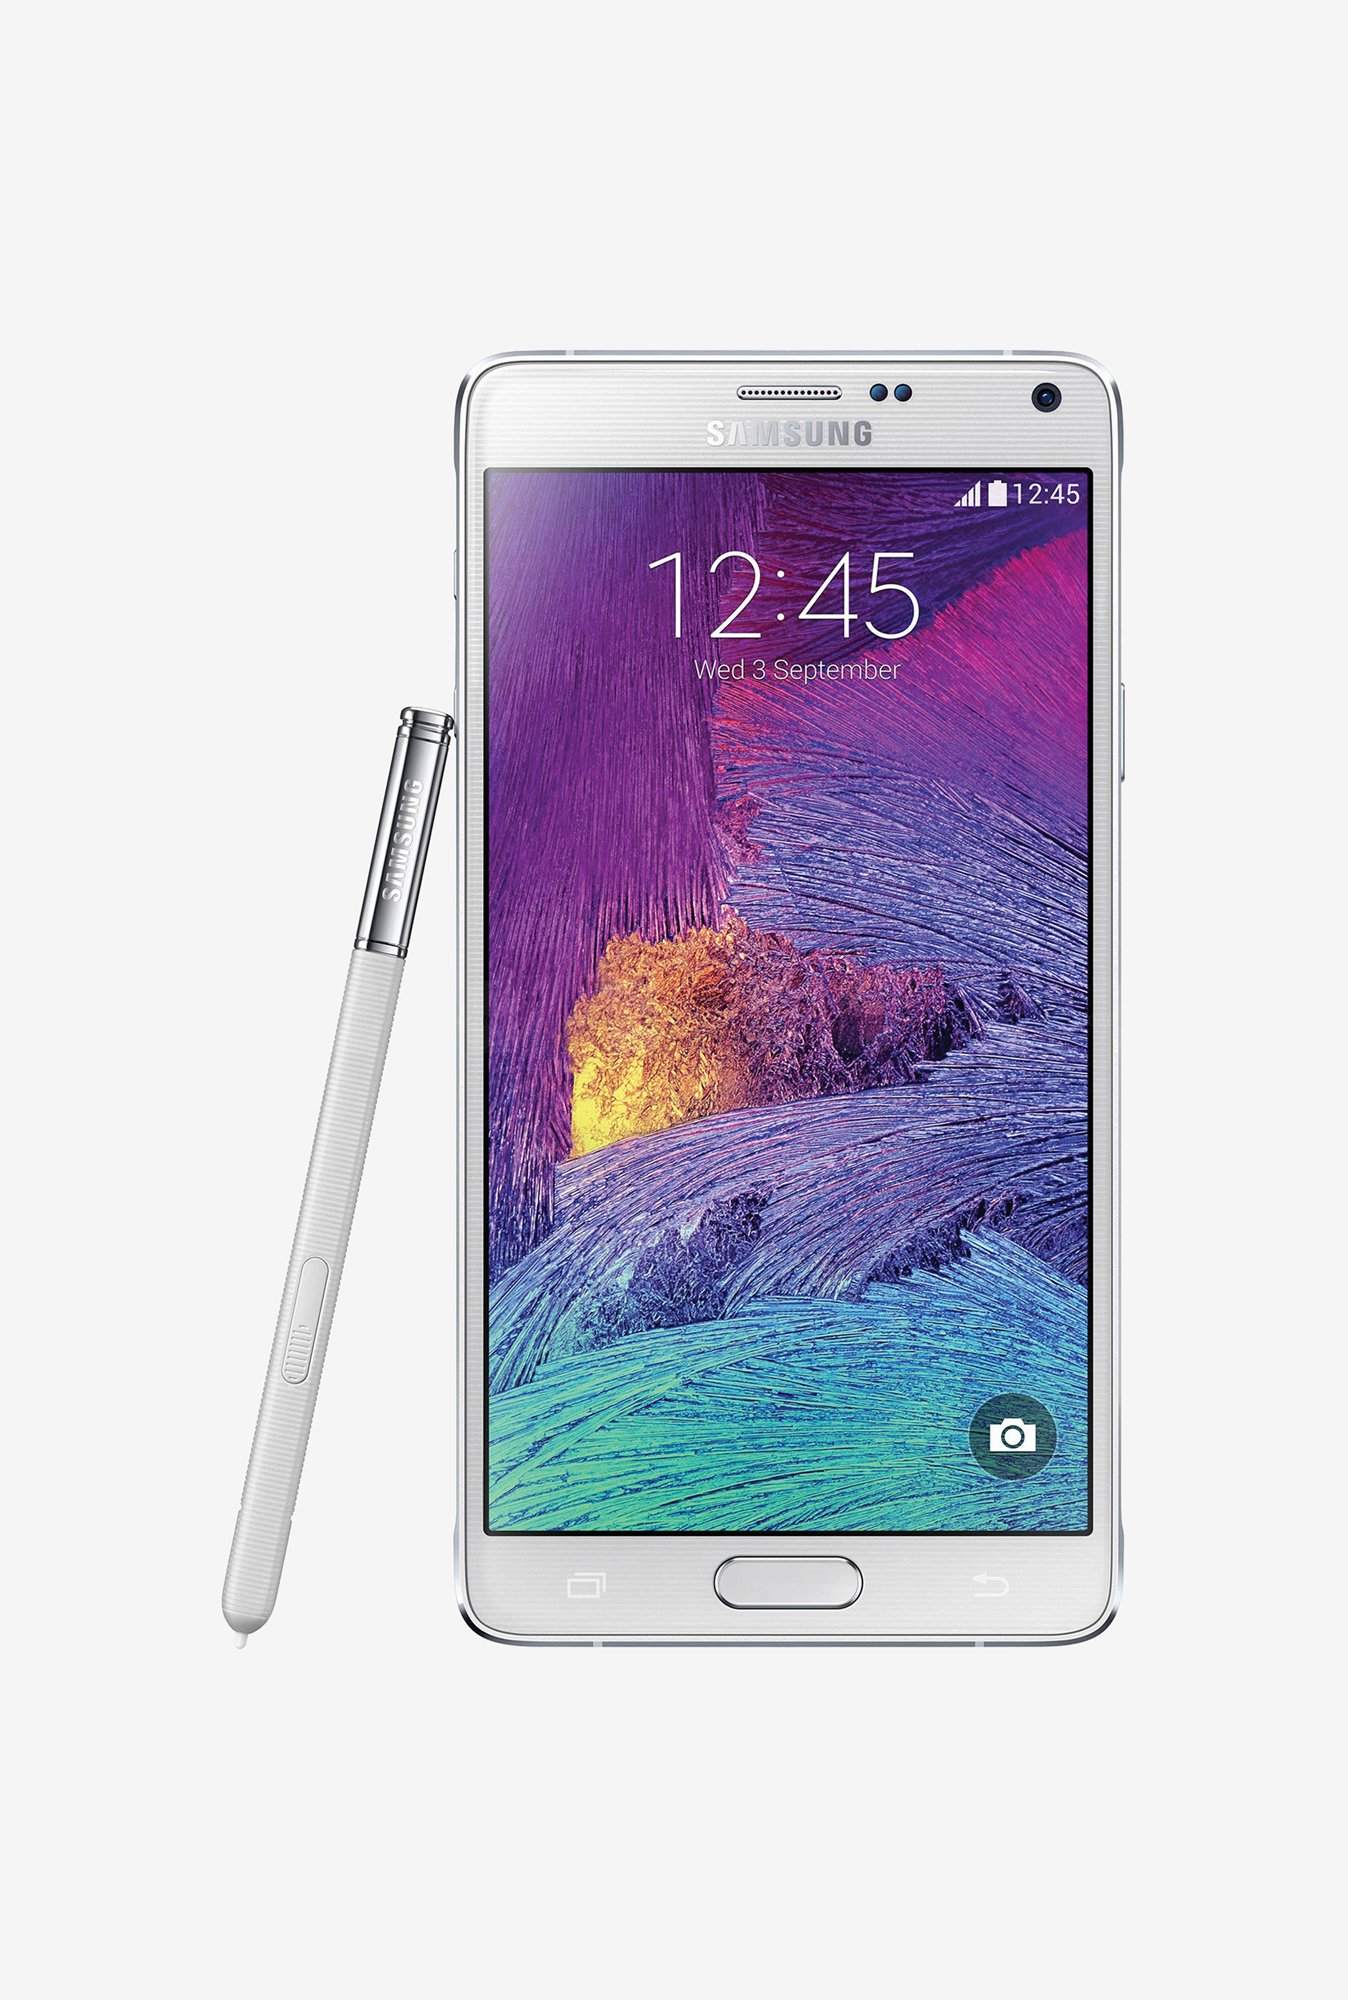 Samsung Note 4 N910G 32 GB (White) 3 GB RAM, Single SIM